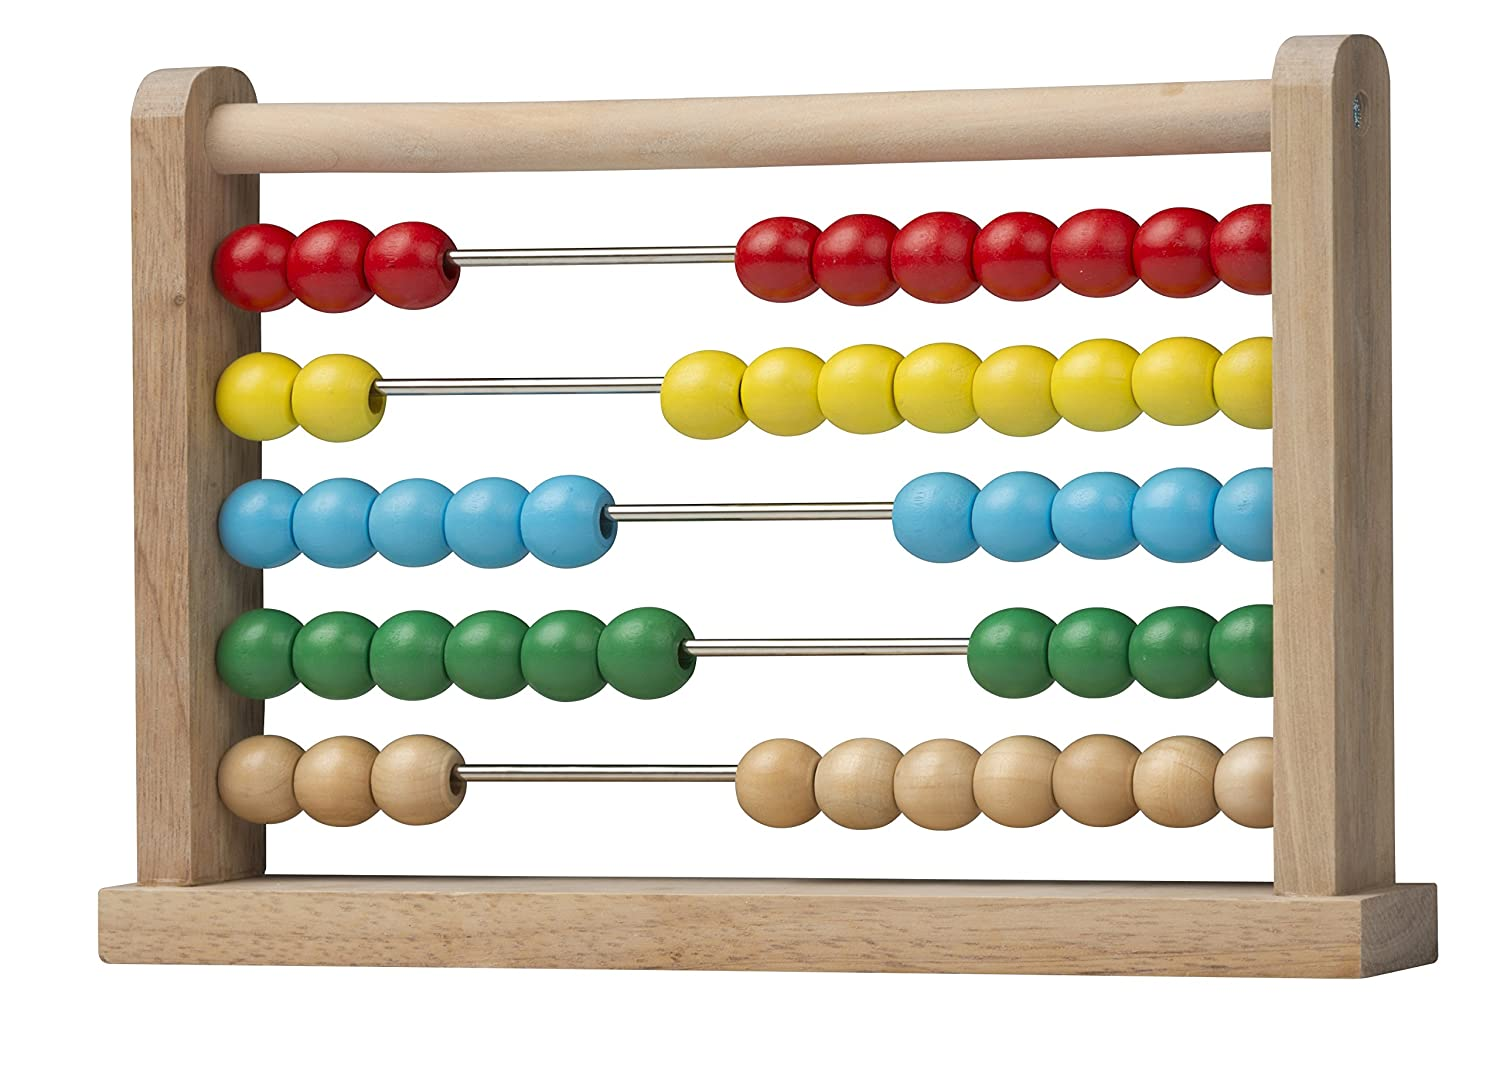 Marionette 49321 Abacus Wood Marionette Wooden Toys